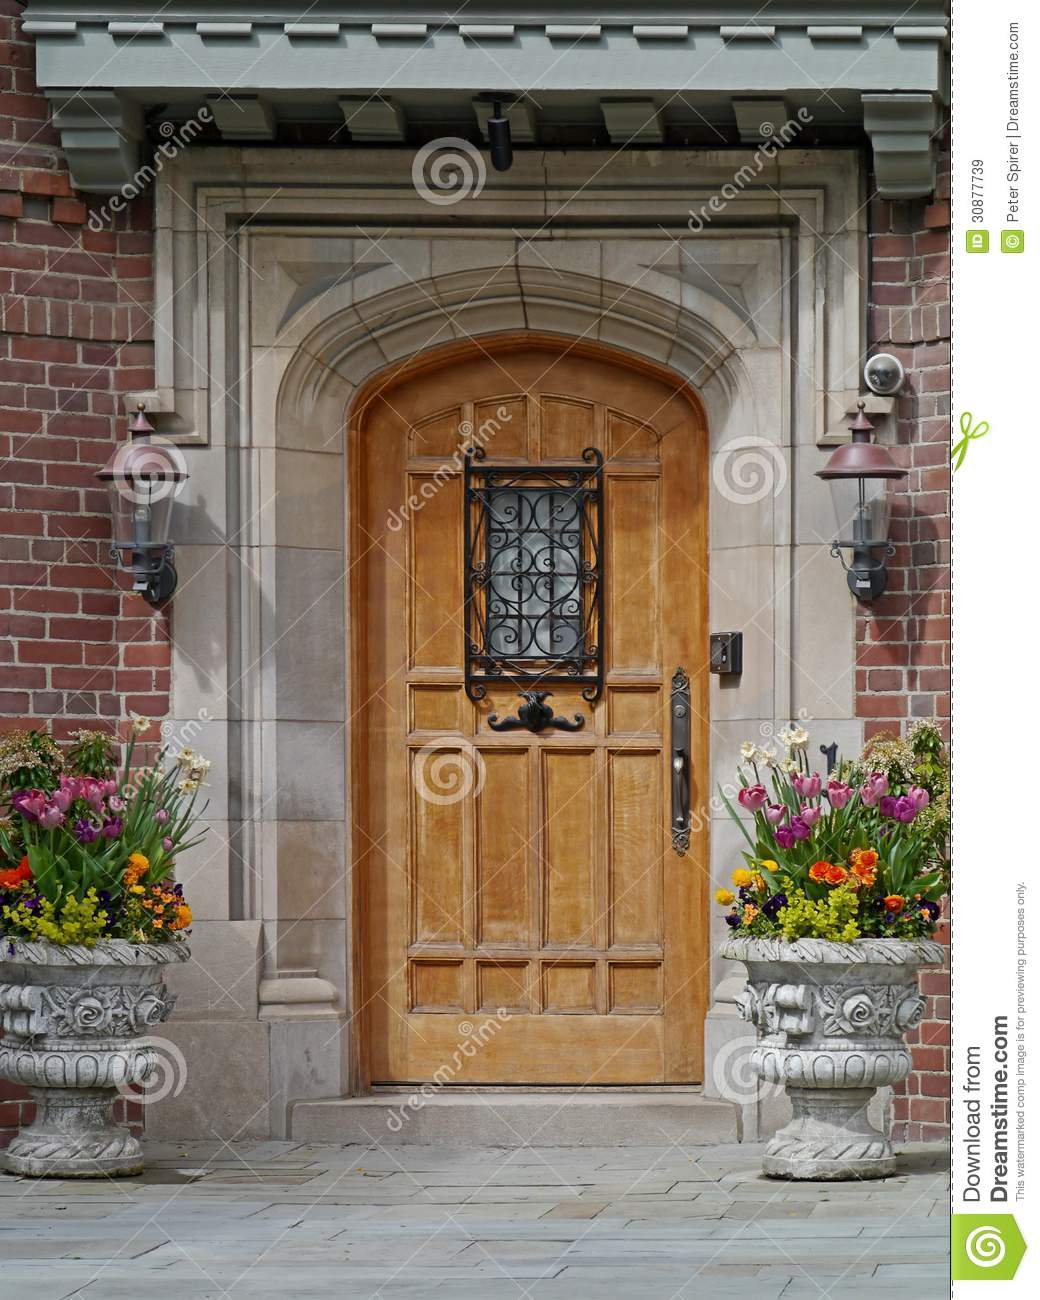 Front door of house with flower pots royalty free stock for New front door for house